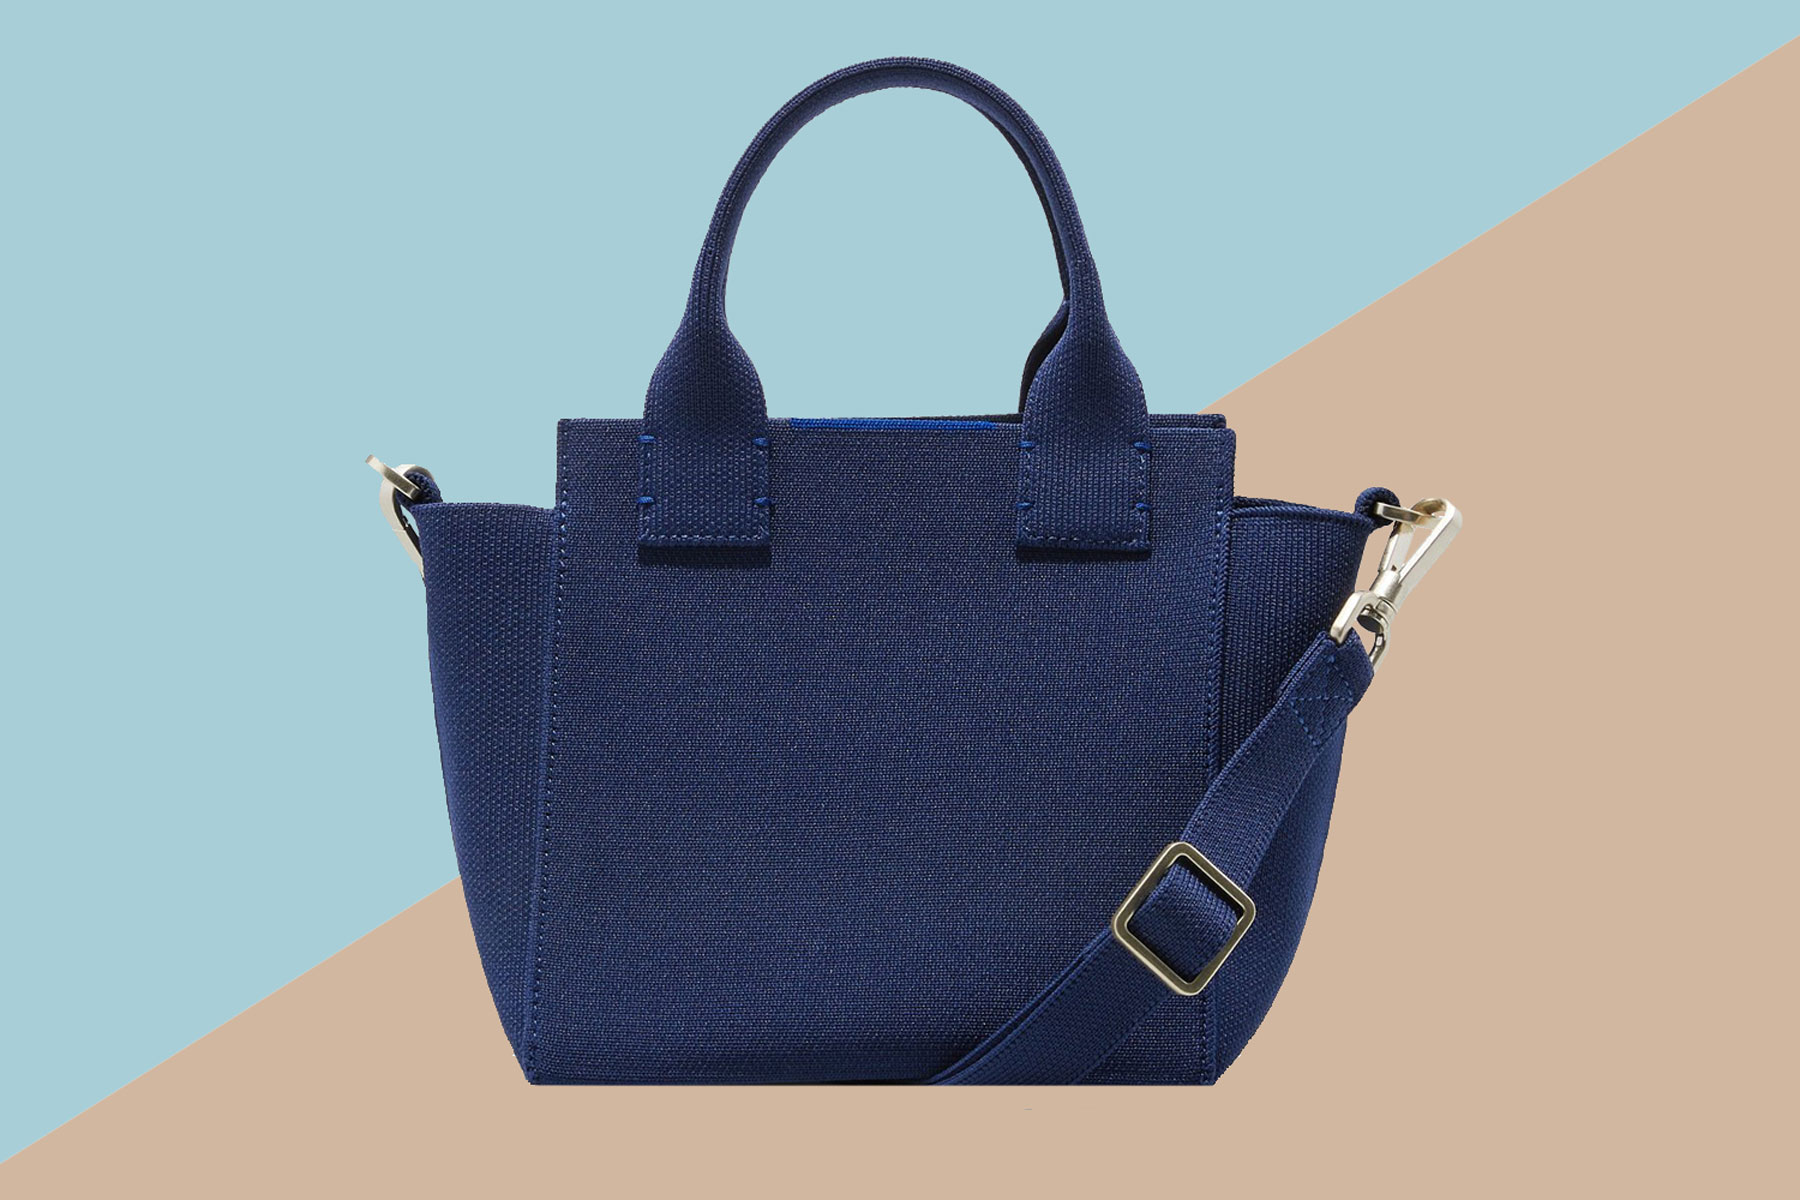 Navy mini handbag